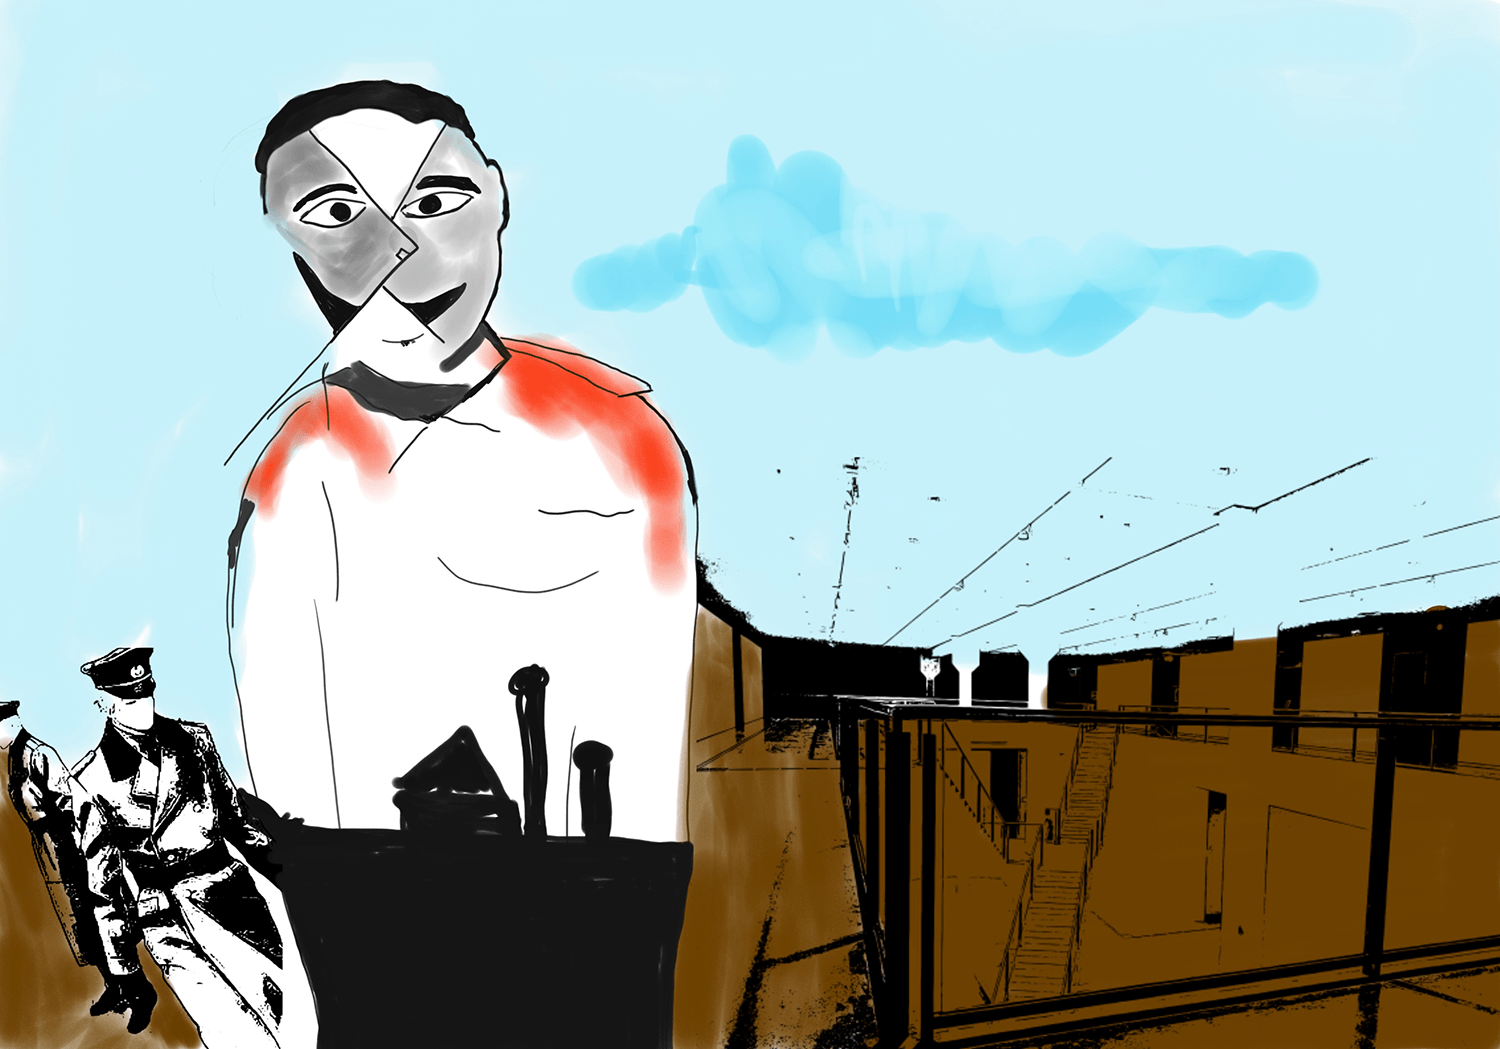 Pale blue sky, brown buildings, Nazi silhouettes in background, foreground figure in white shirt with the shadow of a death camp inside the figure